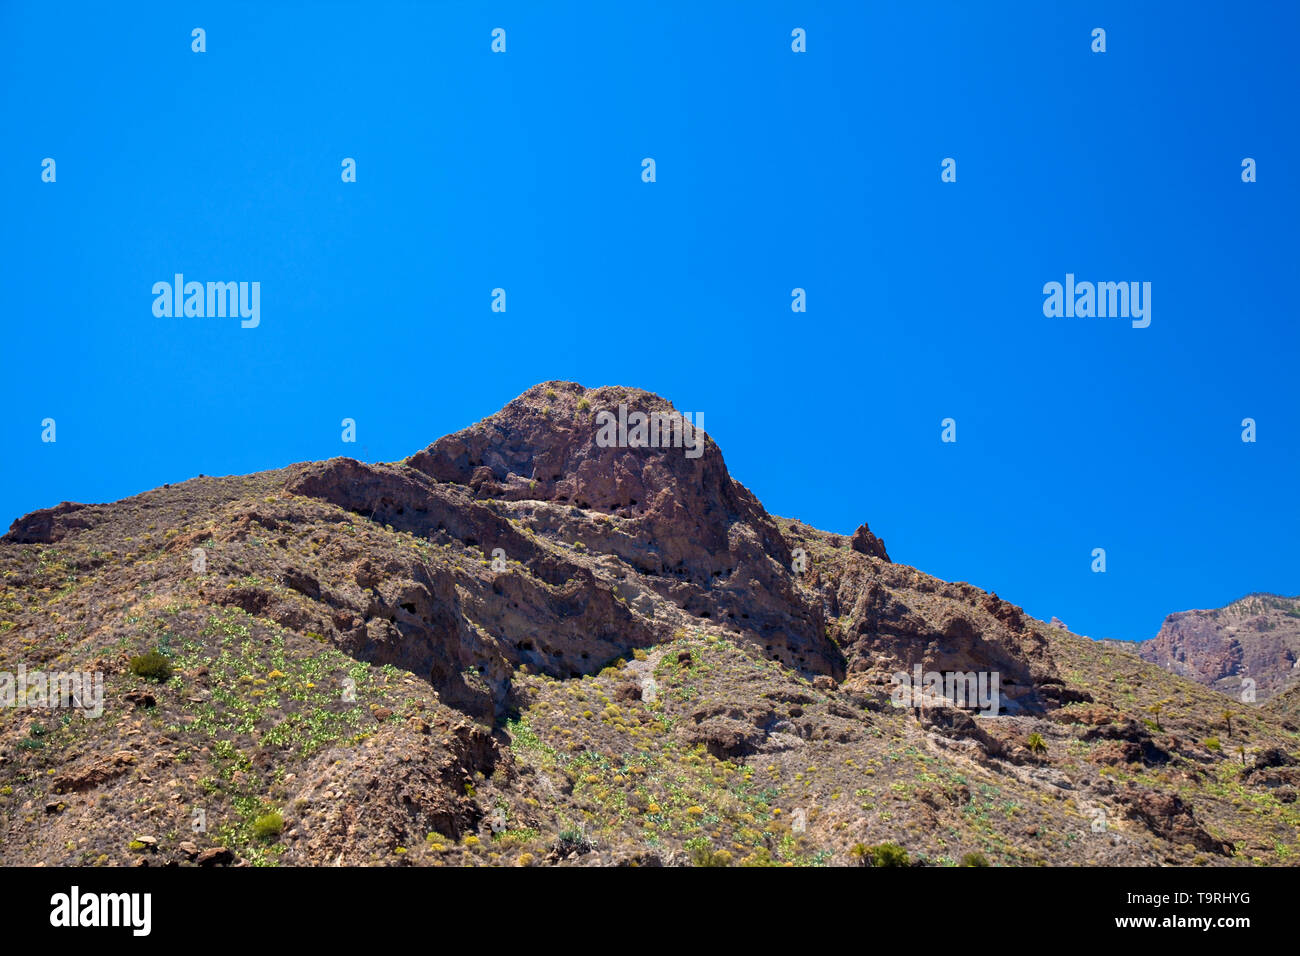 Gran Canaria, the largest aboriginal cave villages on Canary Islands Montana de los Huesos, Bones Mountain, mutliple caves visible in the soft layer o - Stock Image